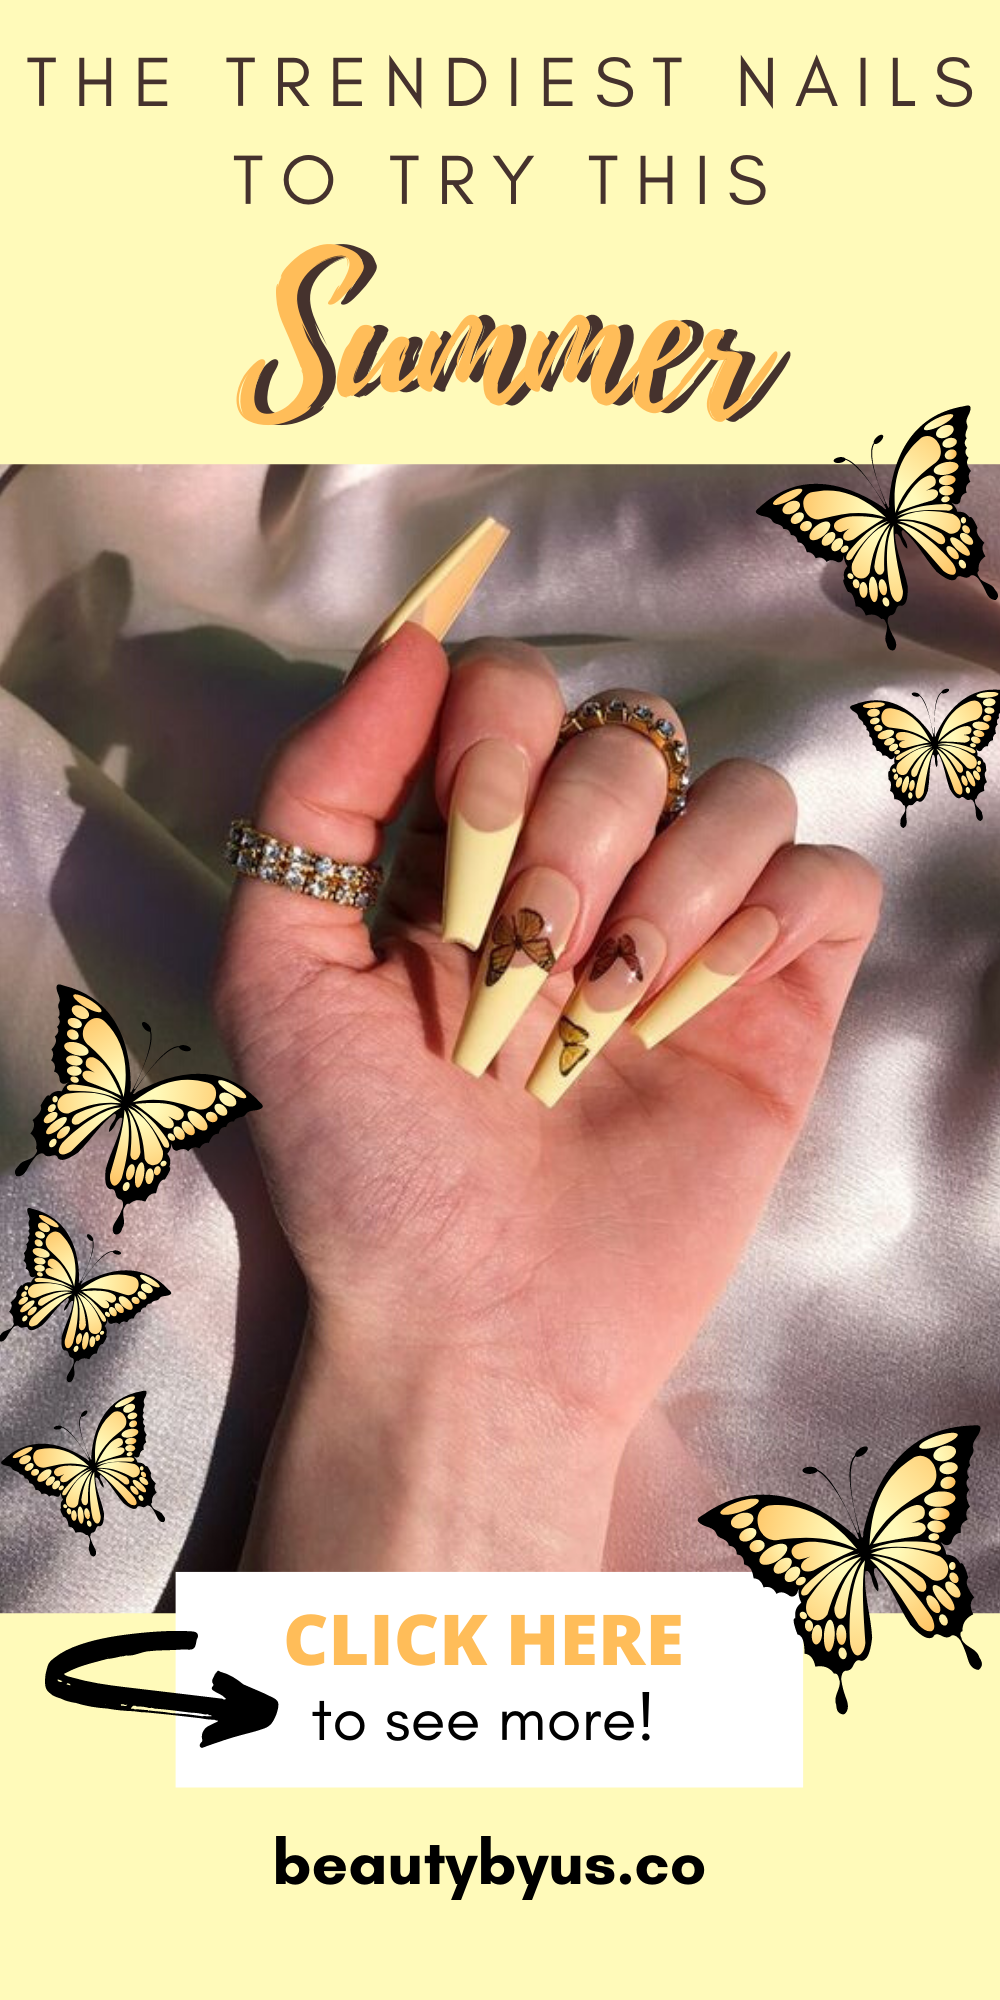 Summer Nails 2020 Color Trends Trending Baddie Nails Gel Acrylic And Natural In 2020 Summer Nails Simple Acrylic Nails Glamour Nails